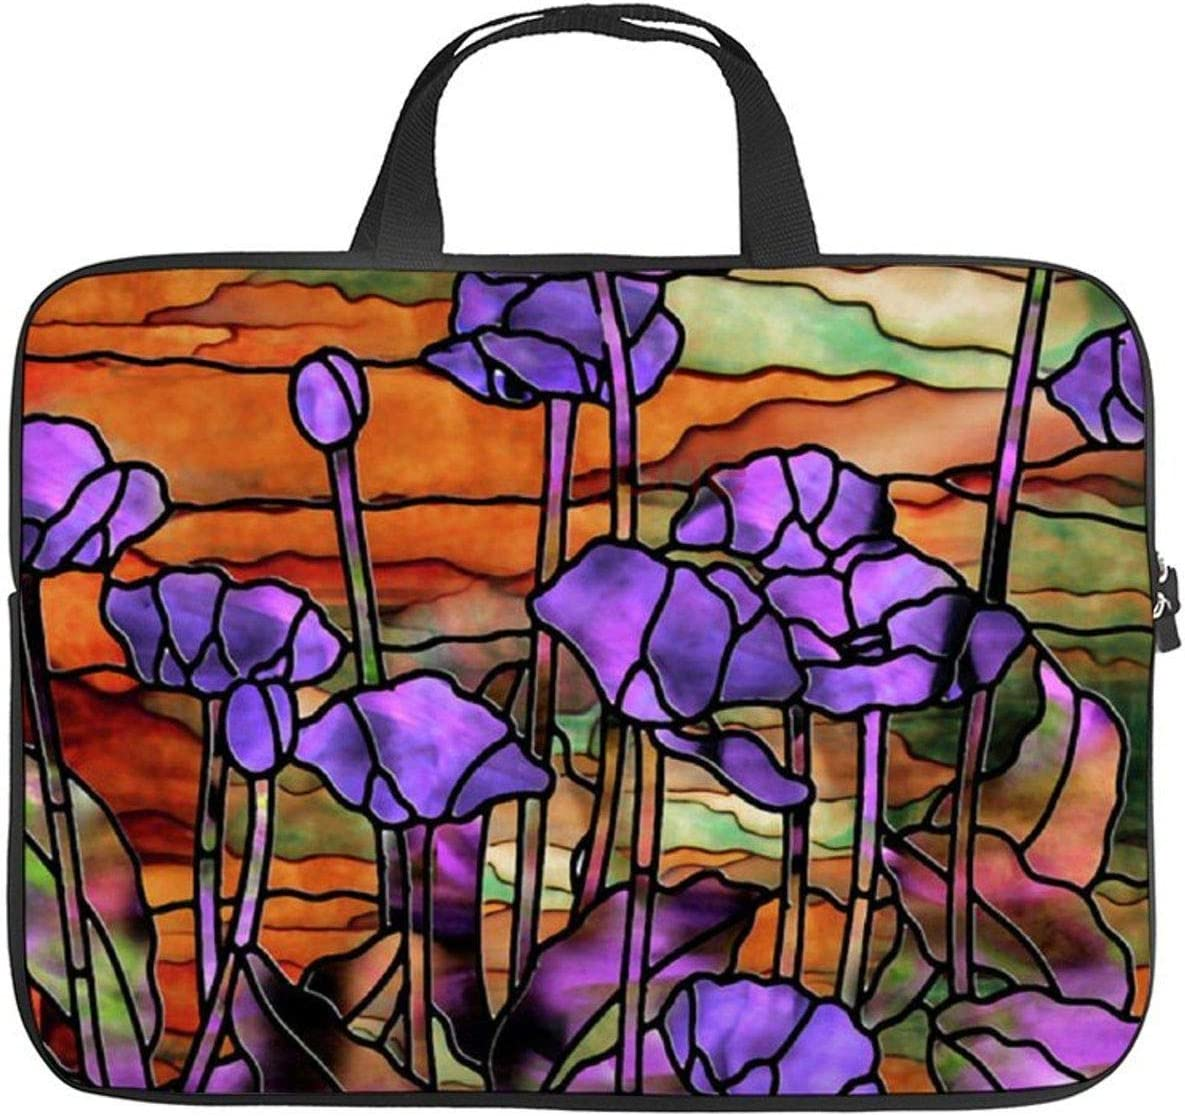 """Neoprene Sleeve Laptop Handbag Case Cover Stained Glass Poppies 10 Inch Laptop Sleeve Case for 9.7"""" 10.5"""" Ipad Pro Air/ 10"""" Microsoft Surface Go/ 10.5"""" Samsung Galaxy Tab"""